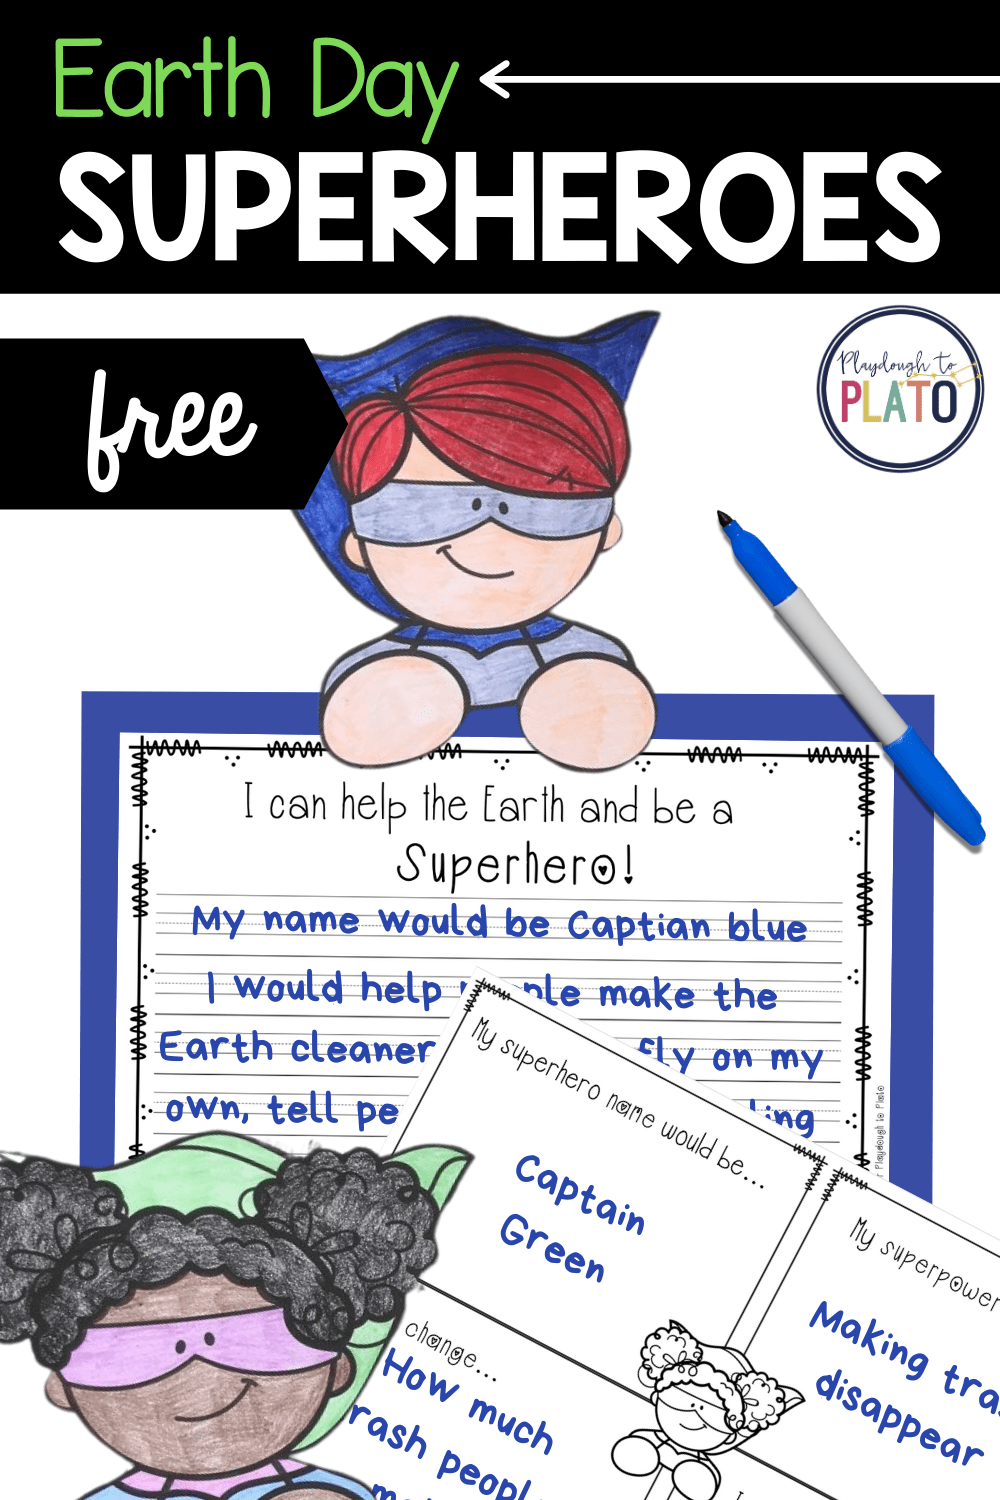 Earth Day Superheroes Activity